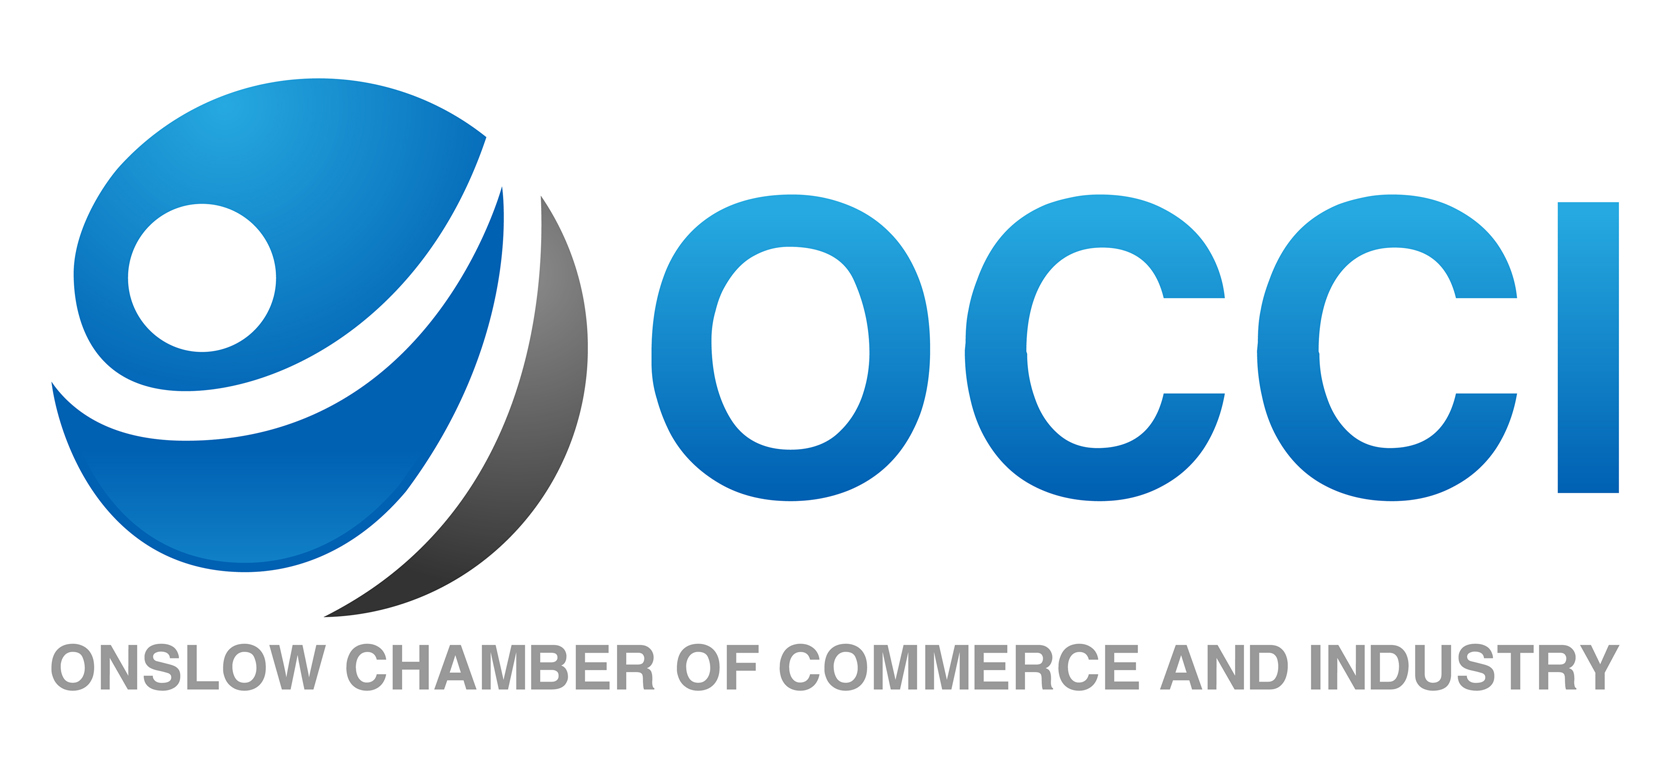 Onslow Chamber of Commerce & Industry